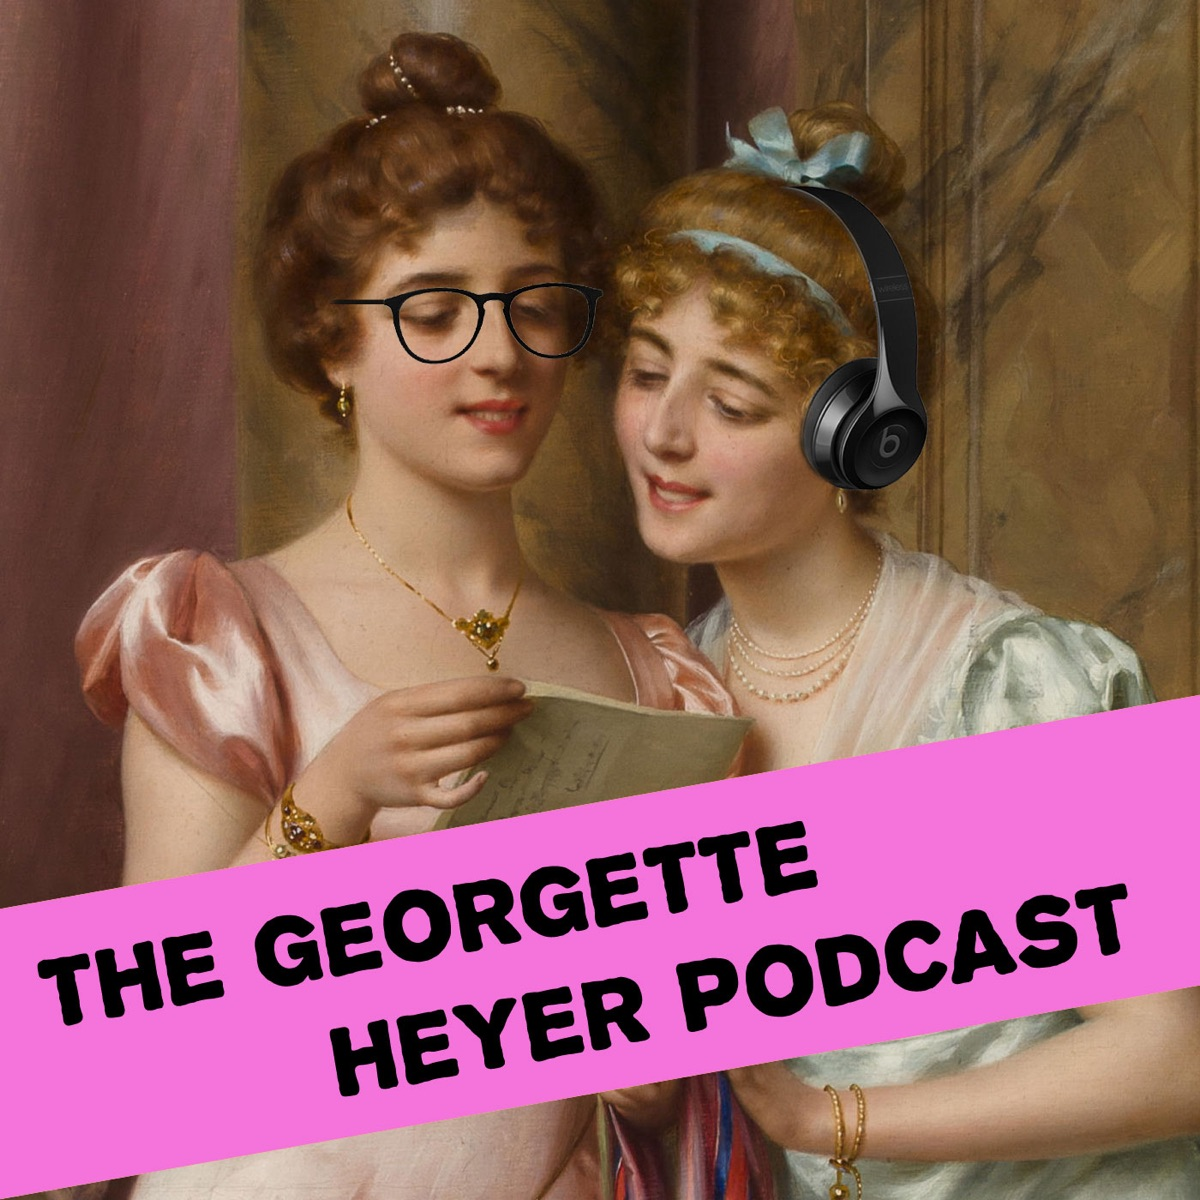 The Georgette Heyer Podcast